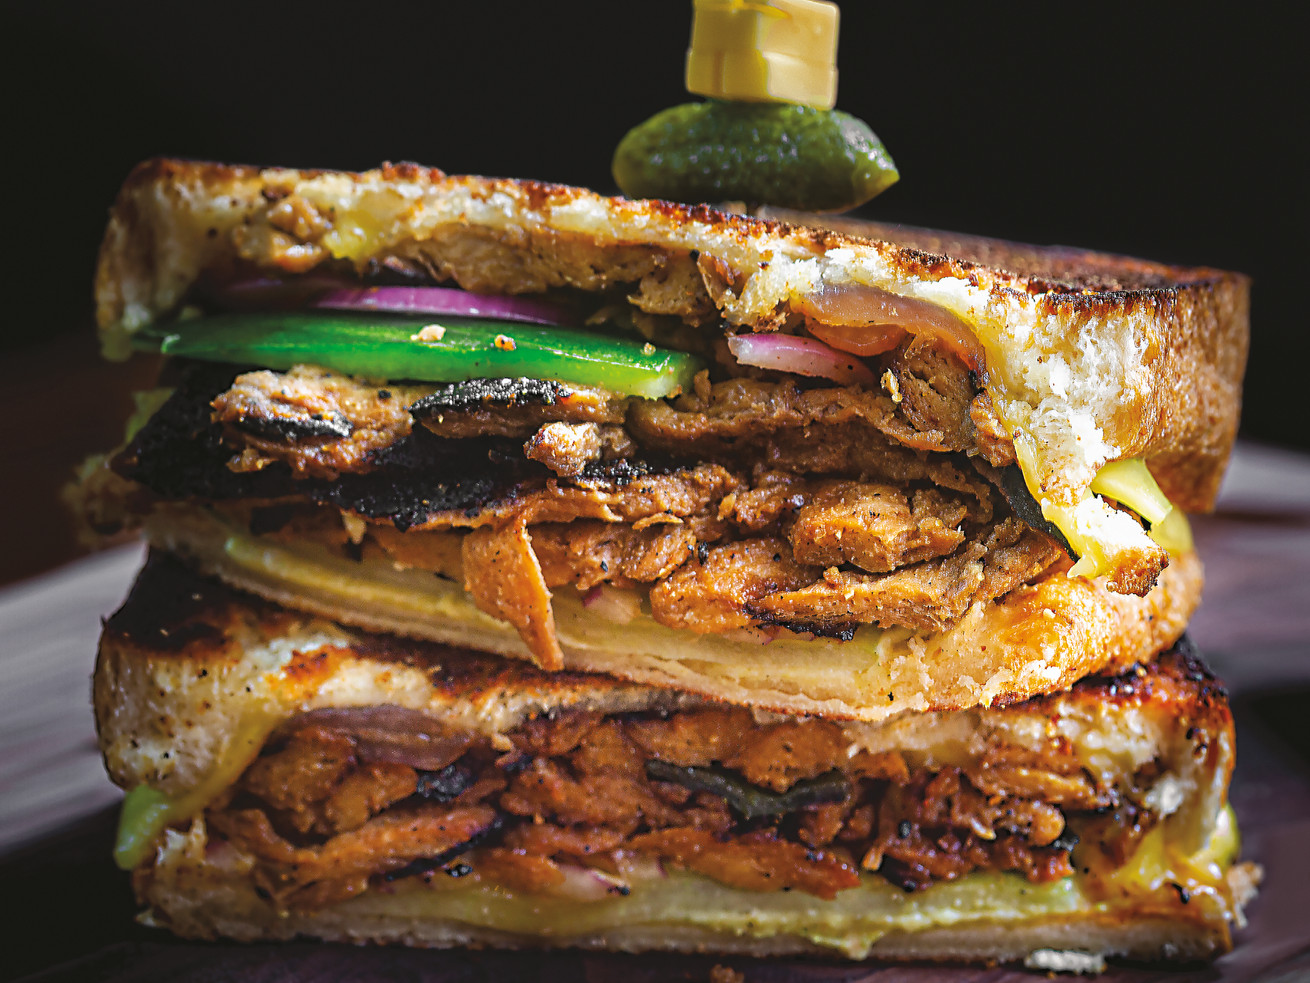 A toasted sandwich sliced in half so you can see the interior, filled with green pepper, onion, and bulgogi